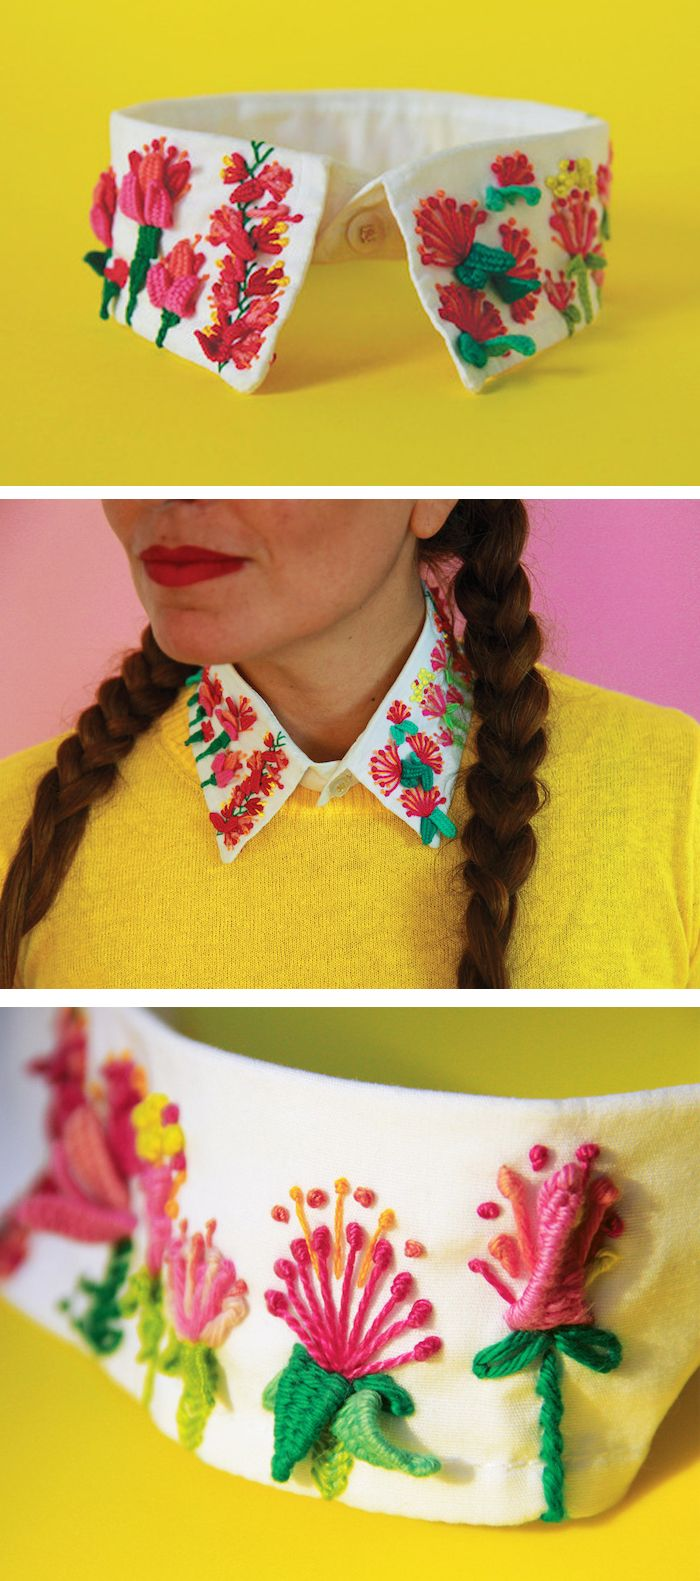 Señorita Lylo embroidered collar // sculptural embroidery stitches // flower embroidery // embroidered clothing